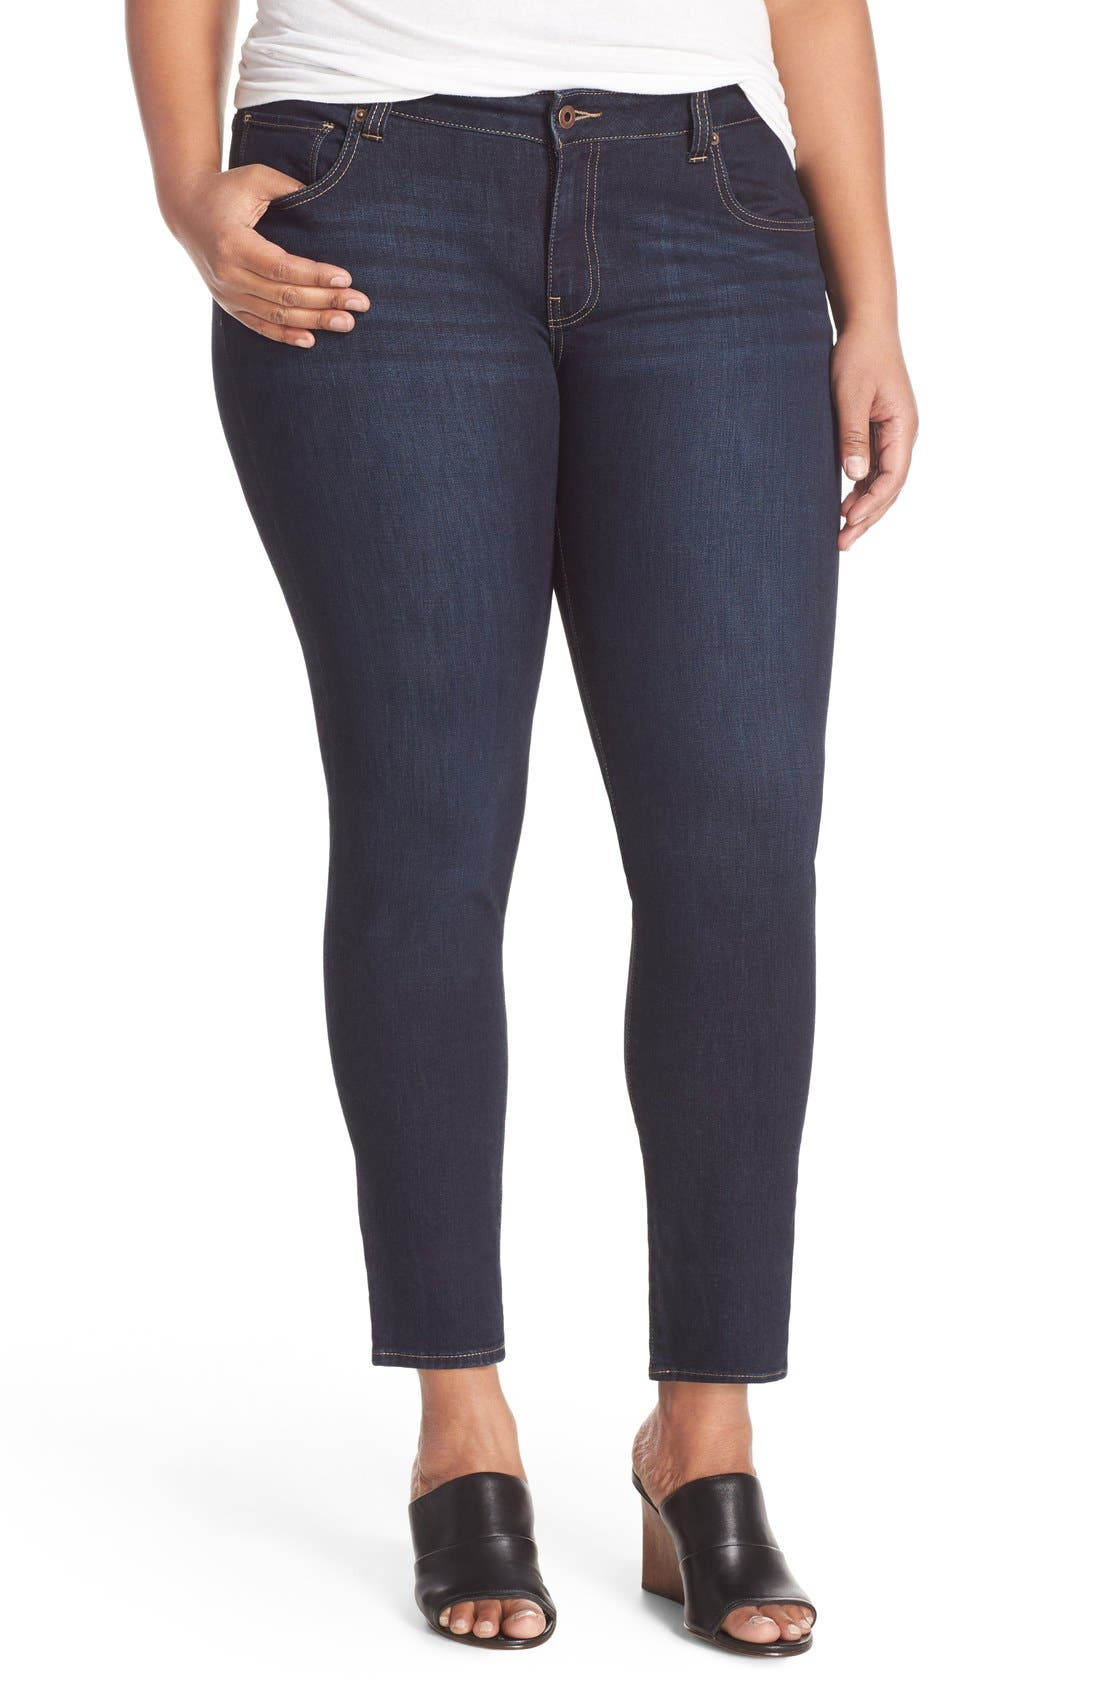 Alternate Image 1 Selected - Lucky Brand Ginger Stretch Skinny Jeans (Plus Size)